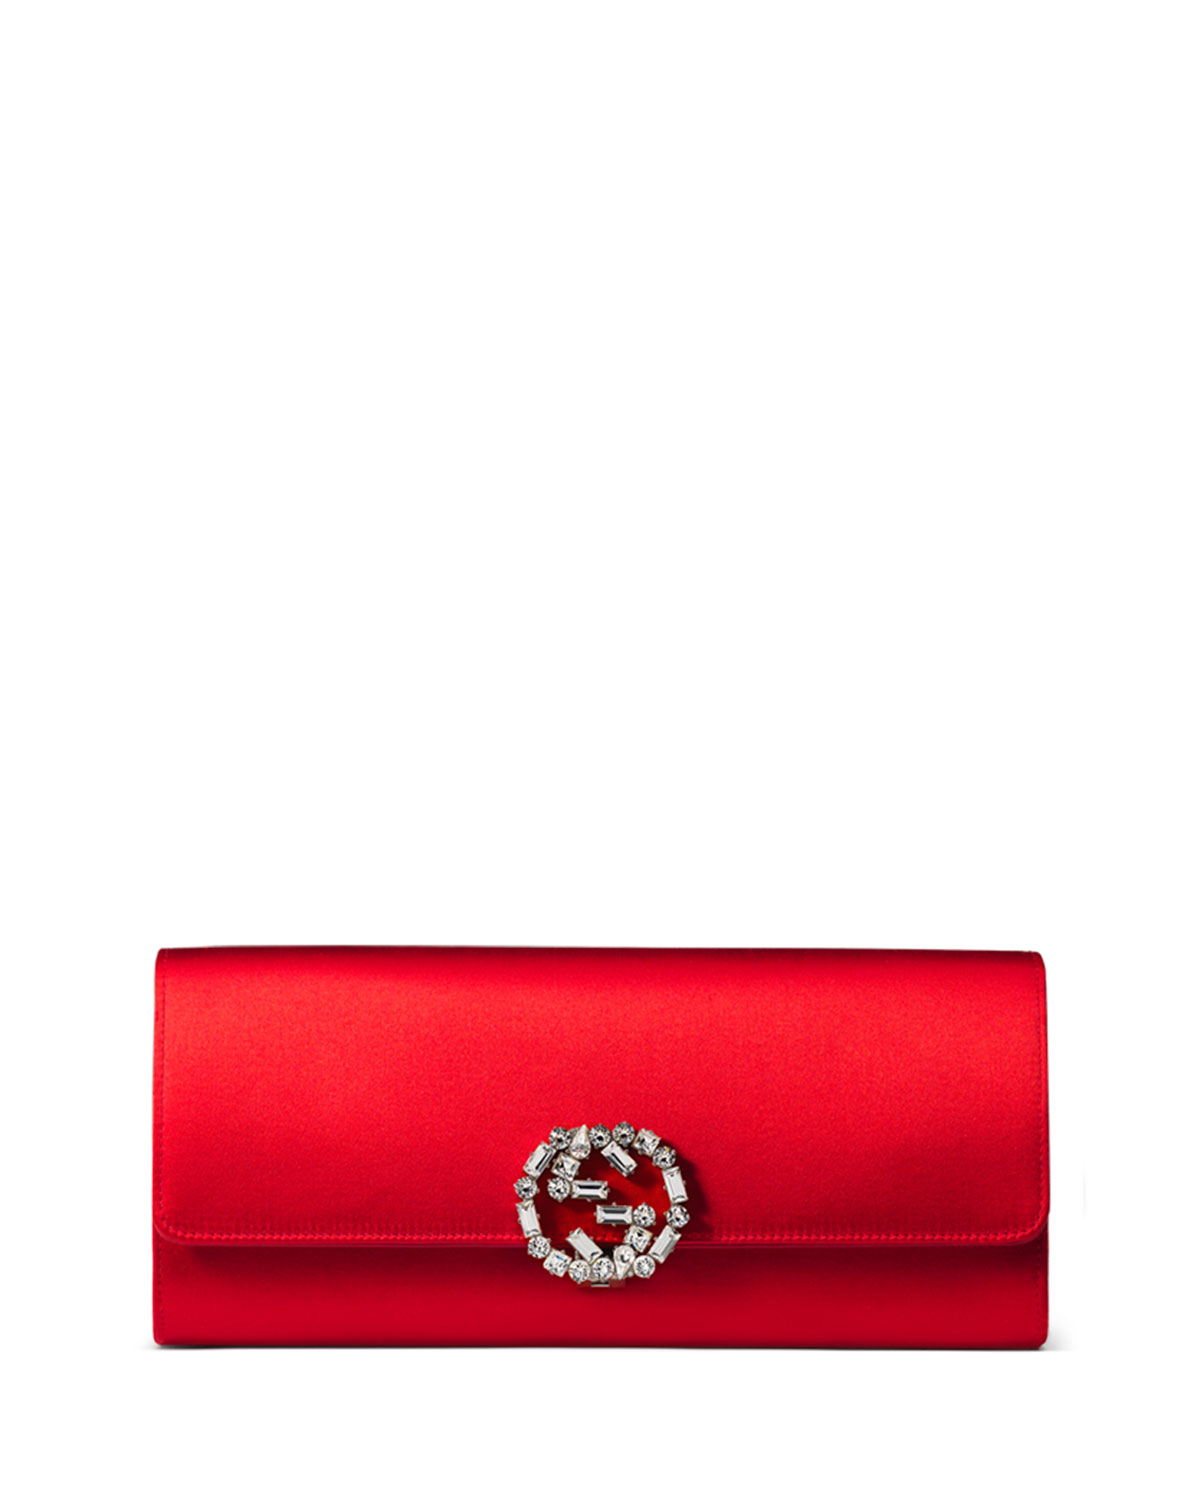 5937146ea49 Gucci Broadway Satin Evening Clutch Bag, Red | Neiman Marcus